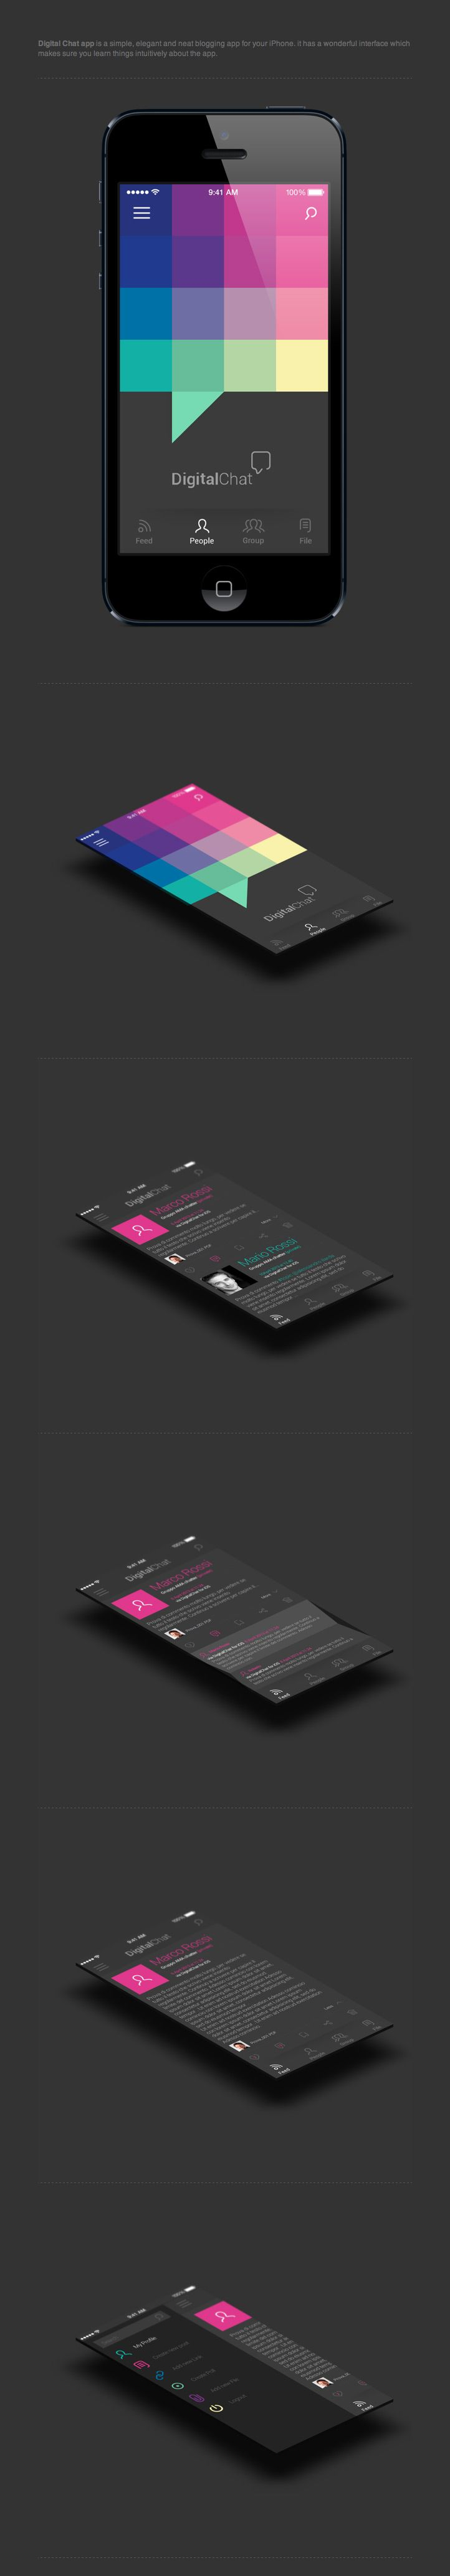 Digital Chat - #UI #UX #Interface #Mobile - http://www.behance.net/gallery/Digital-Chat/9383399